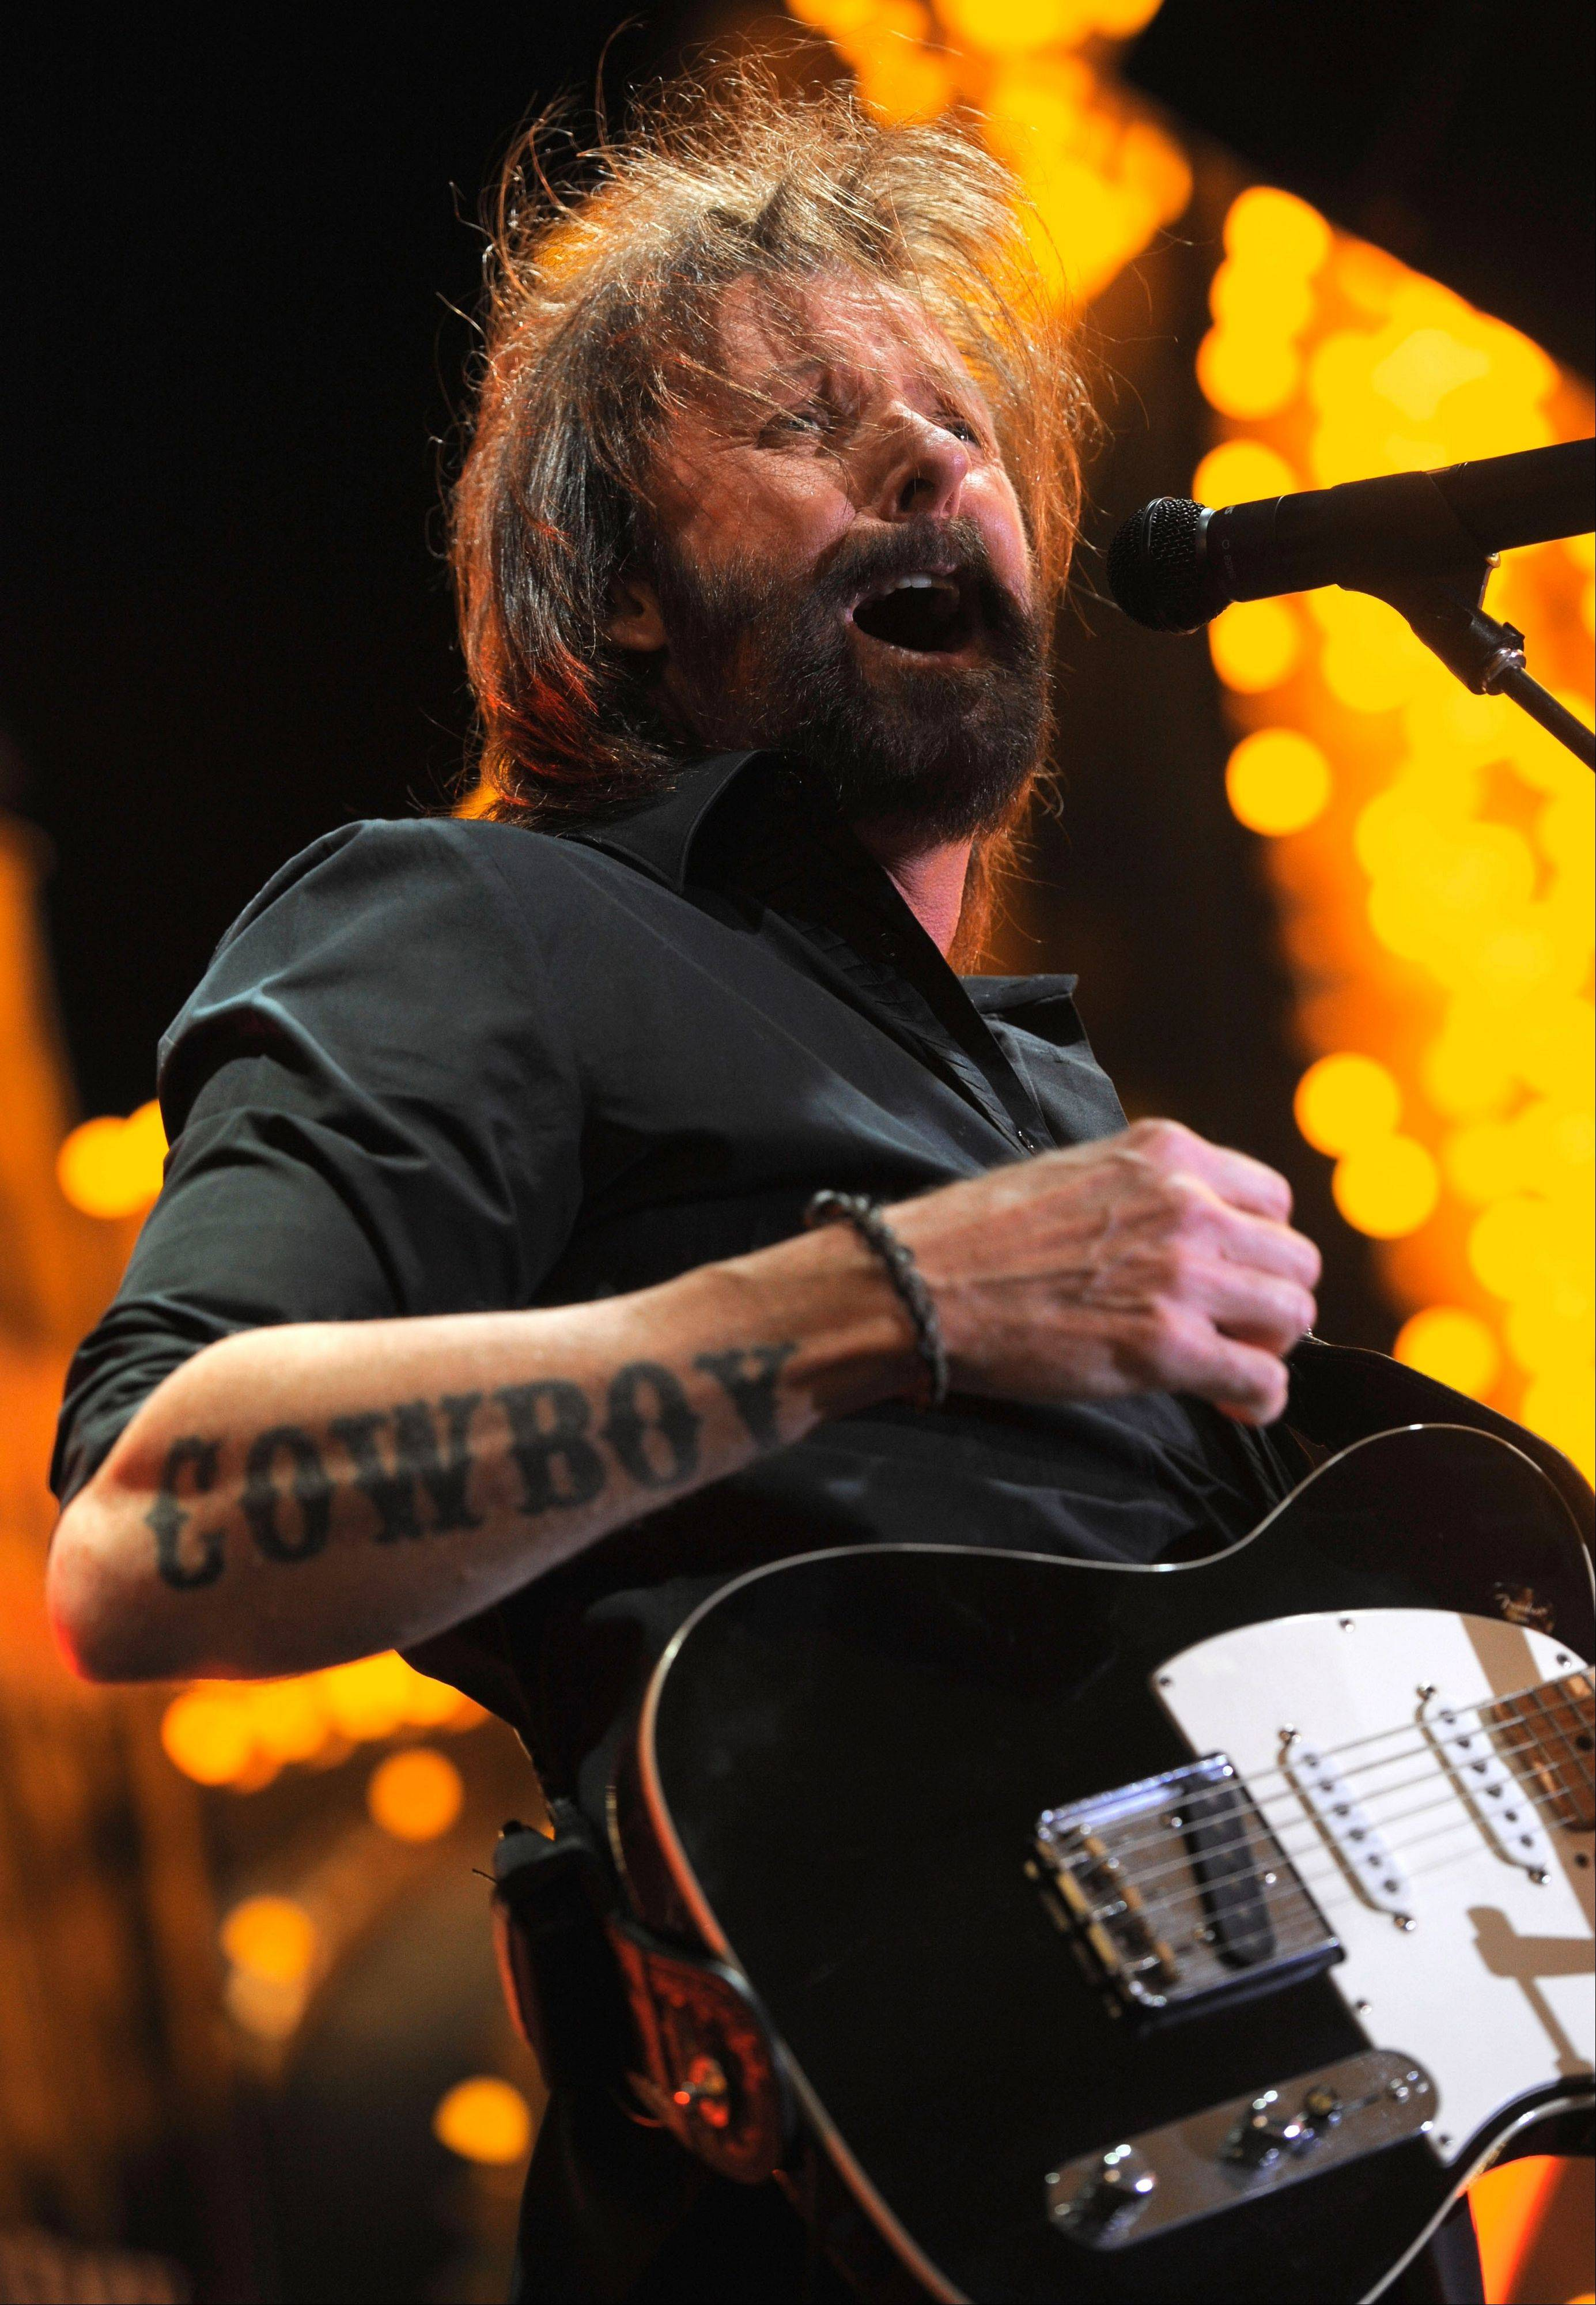 Country musician Ronnie Dunn will perform at the eighth annual Rockin' for the Troops at Wheaton's Cantigny Park on July 20.